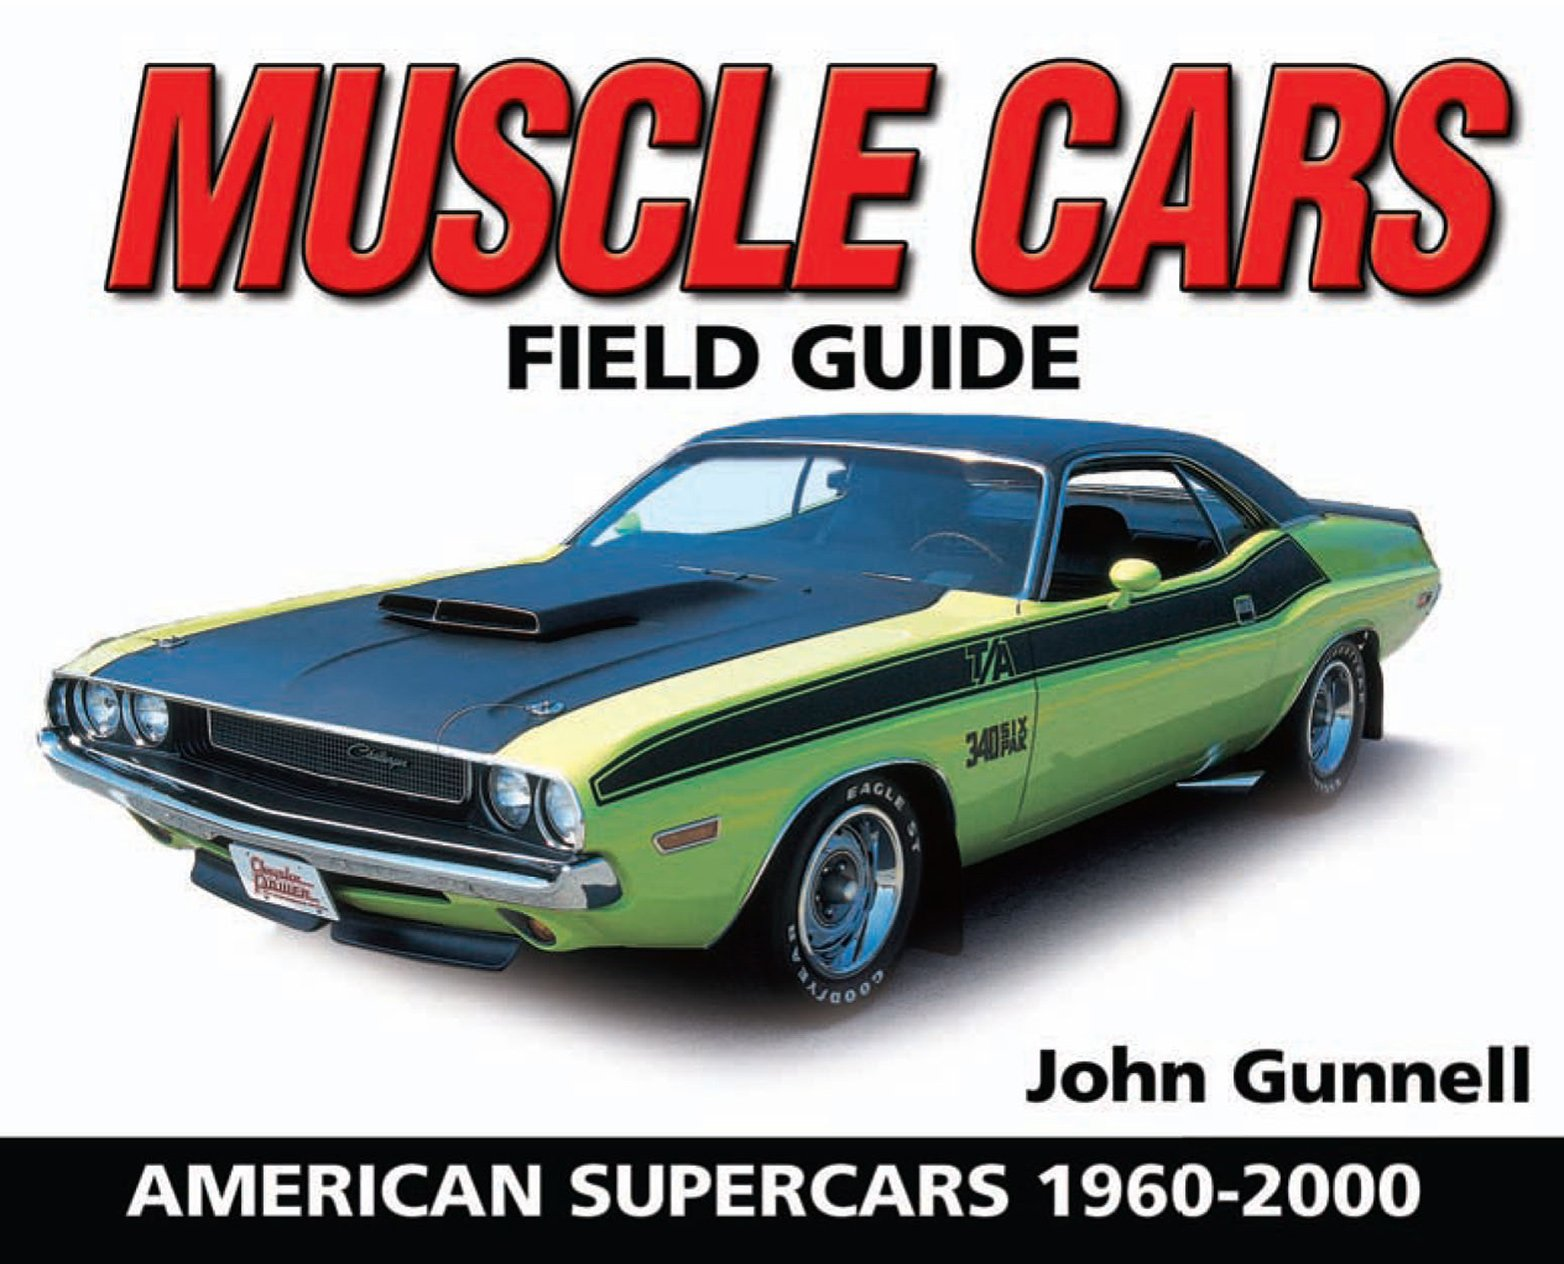 Muscle Cars Field Guide: American Supercars 1960 2000 (Warman's Field Guide) (English Edition)